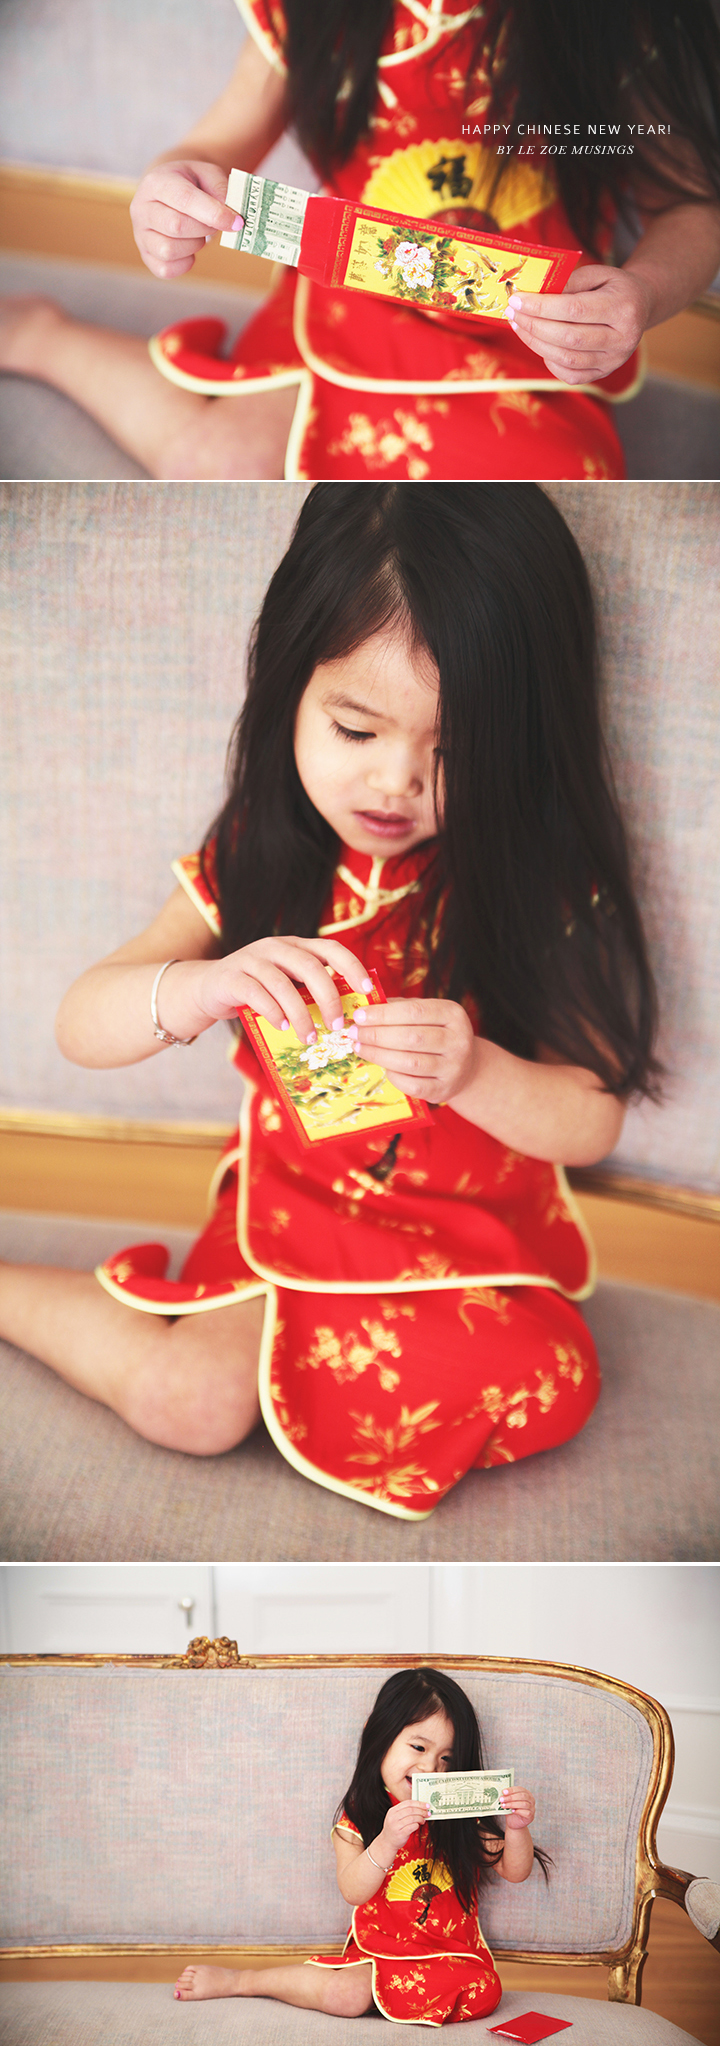 Chinese New Year by Le Zoe Musings